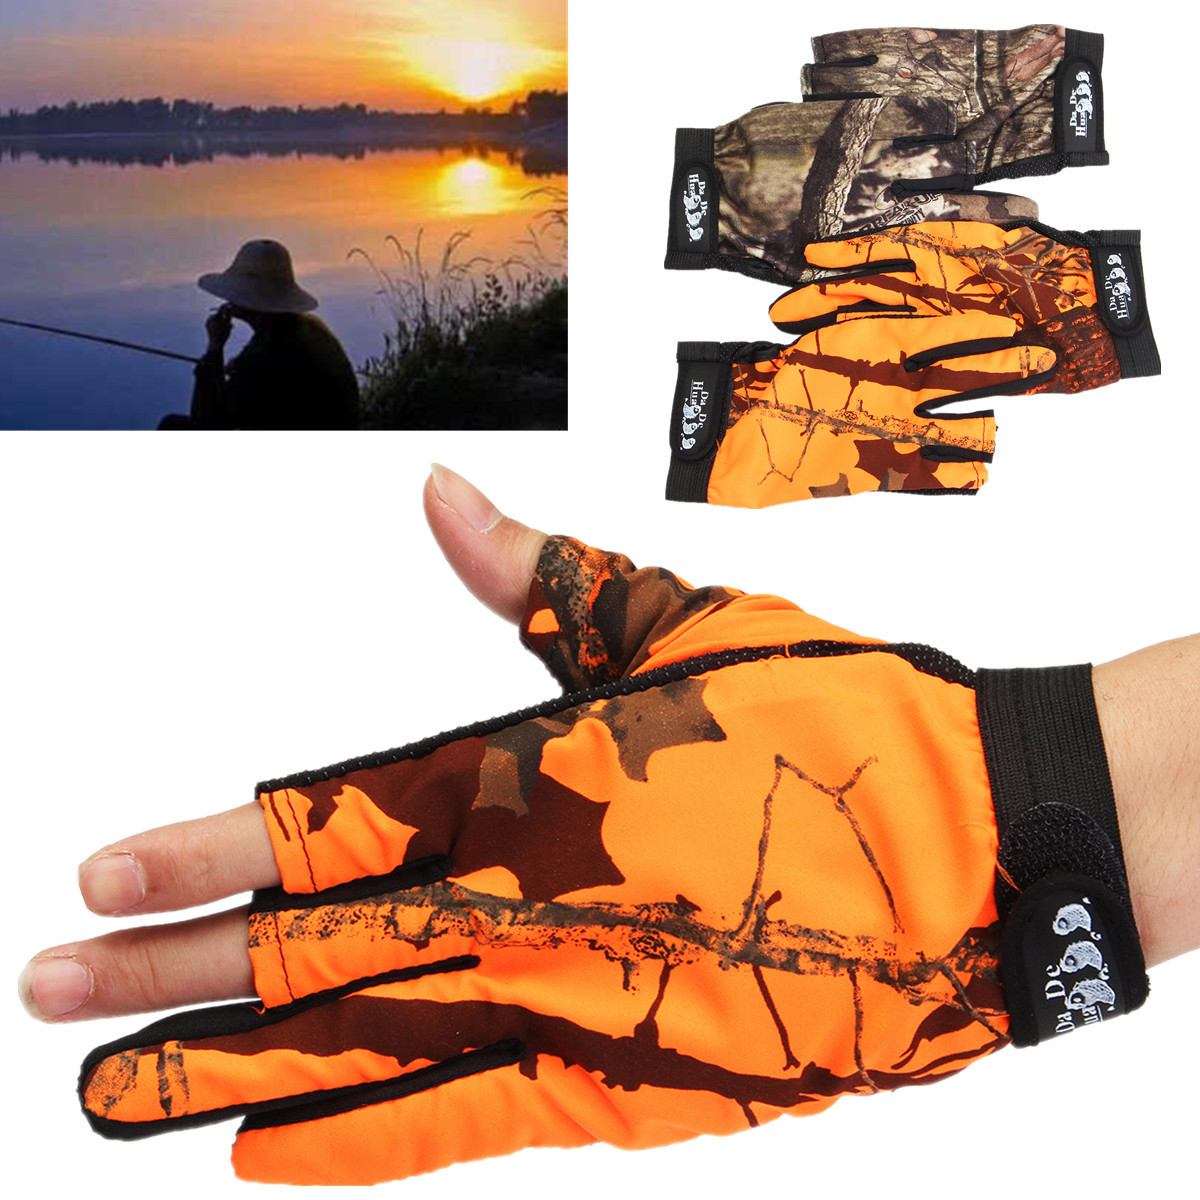 Men Camouflage Fishing Gloves Hunting Anti-Slip Shooting Camo Tactical Outdoor Breathable Mittens